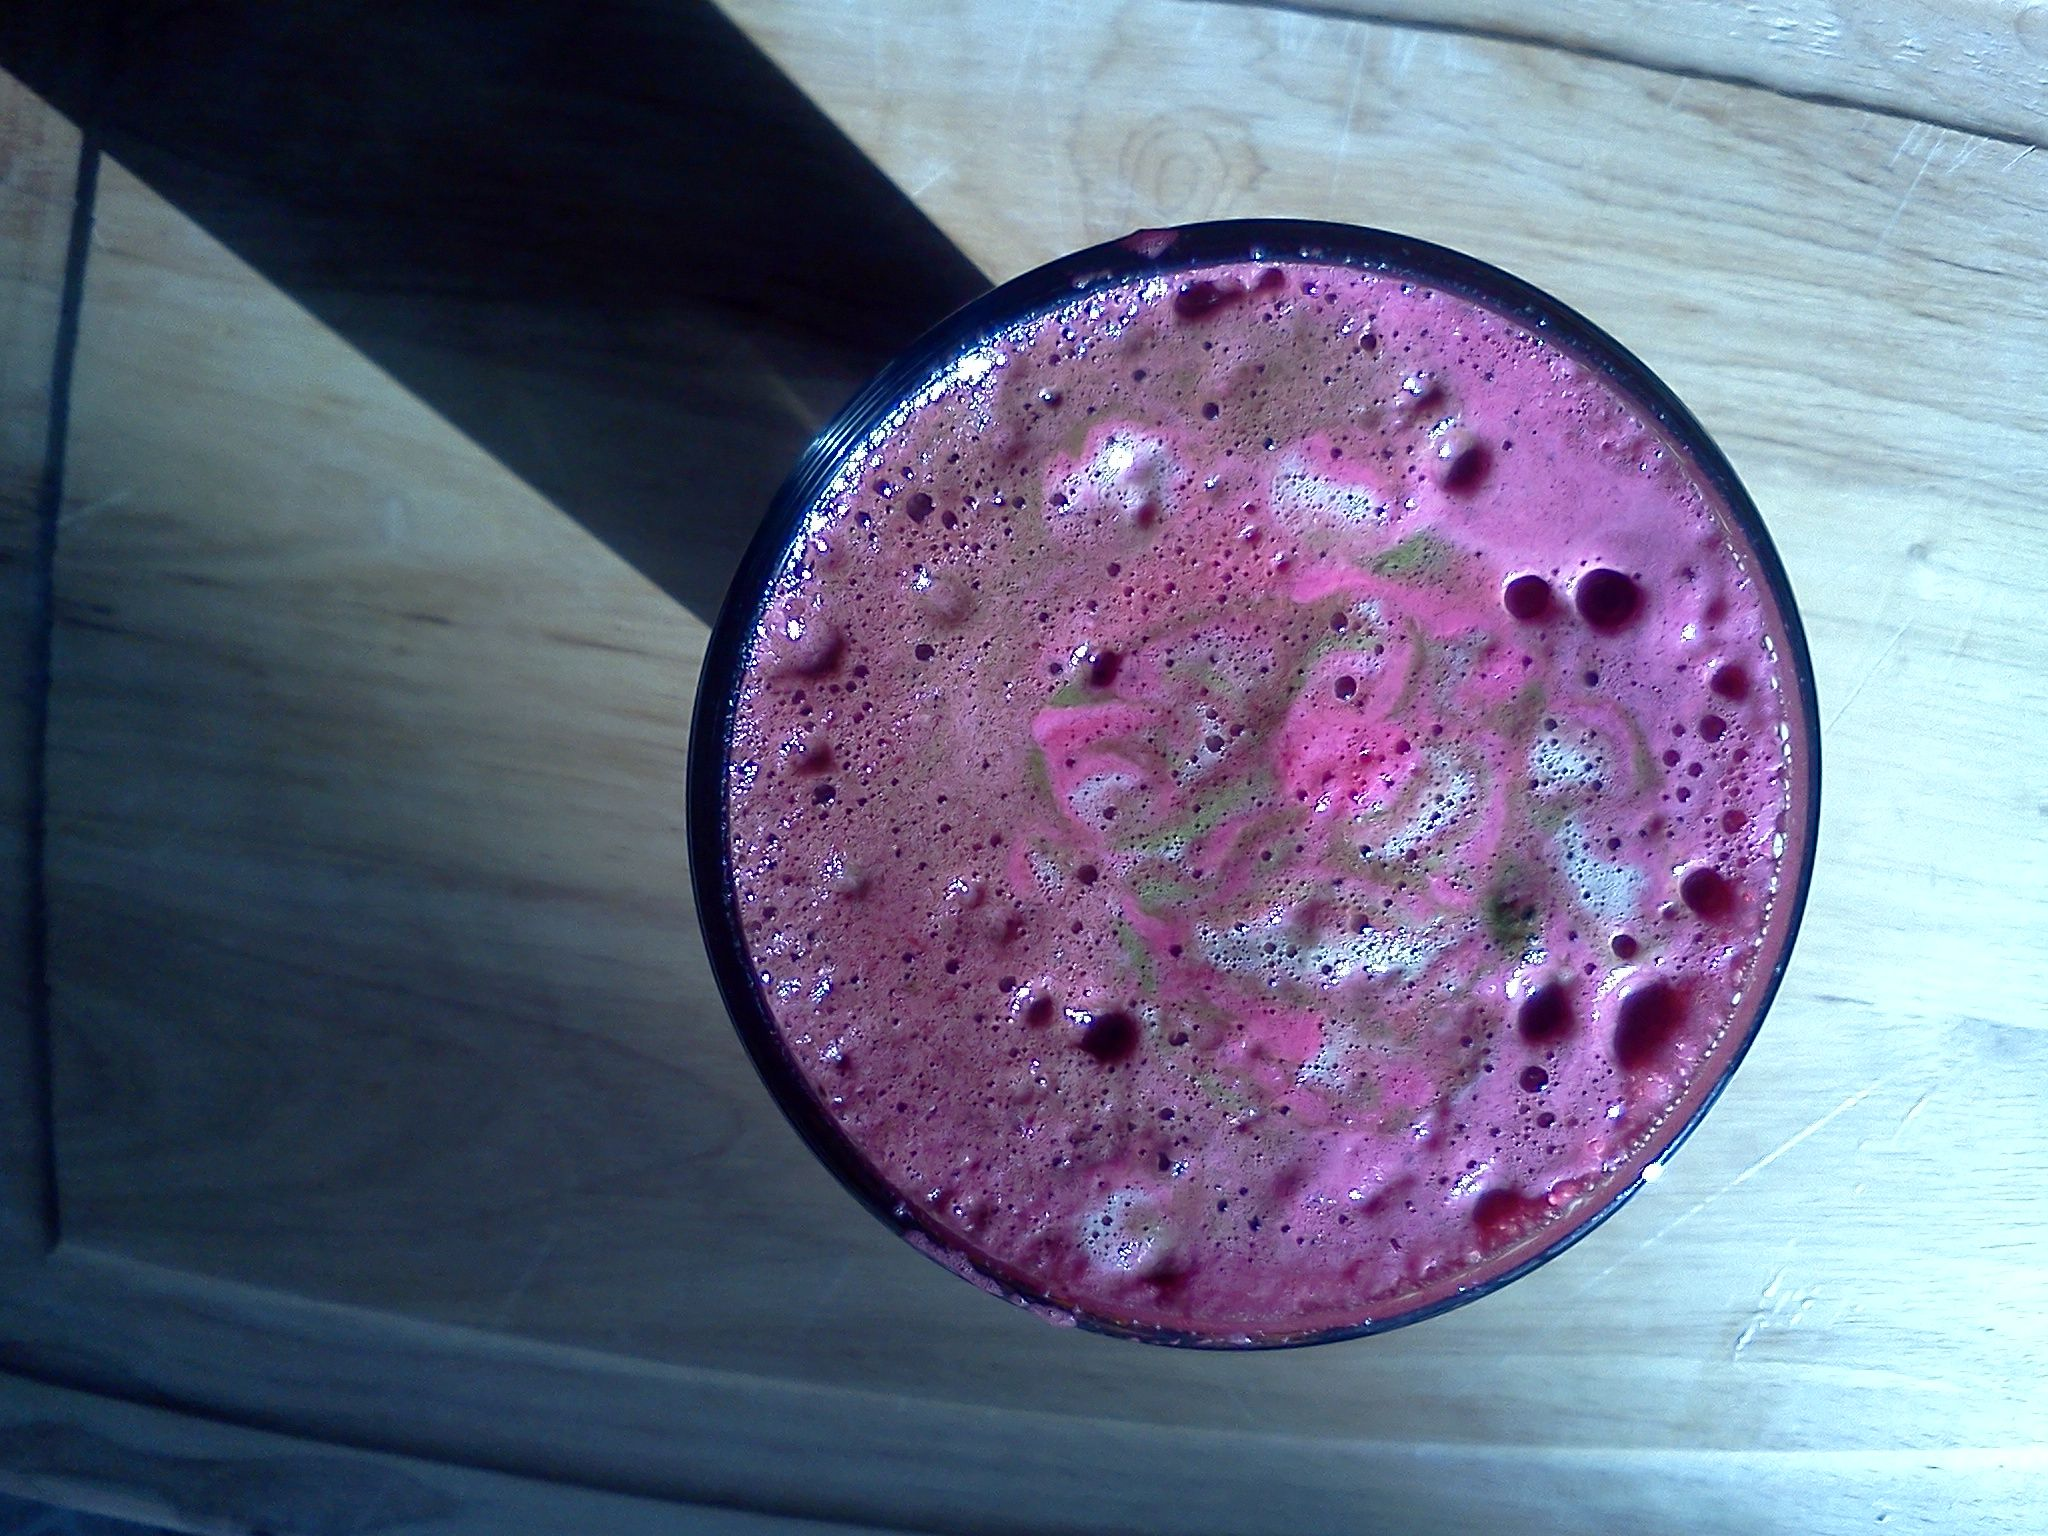 Beet,kale,parsley, apple and pineapple juice! Delicious